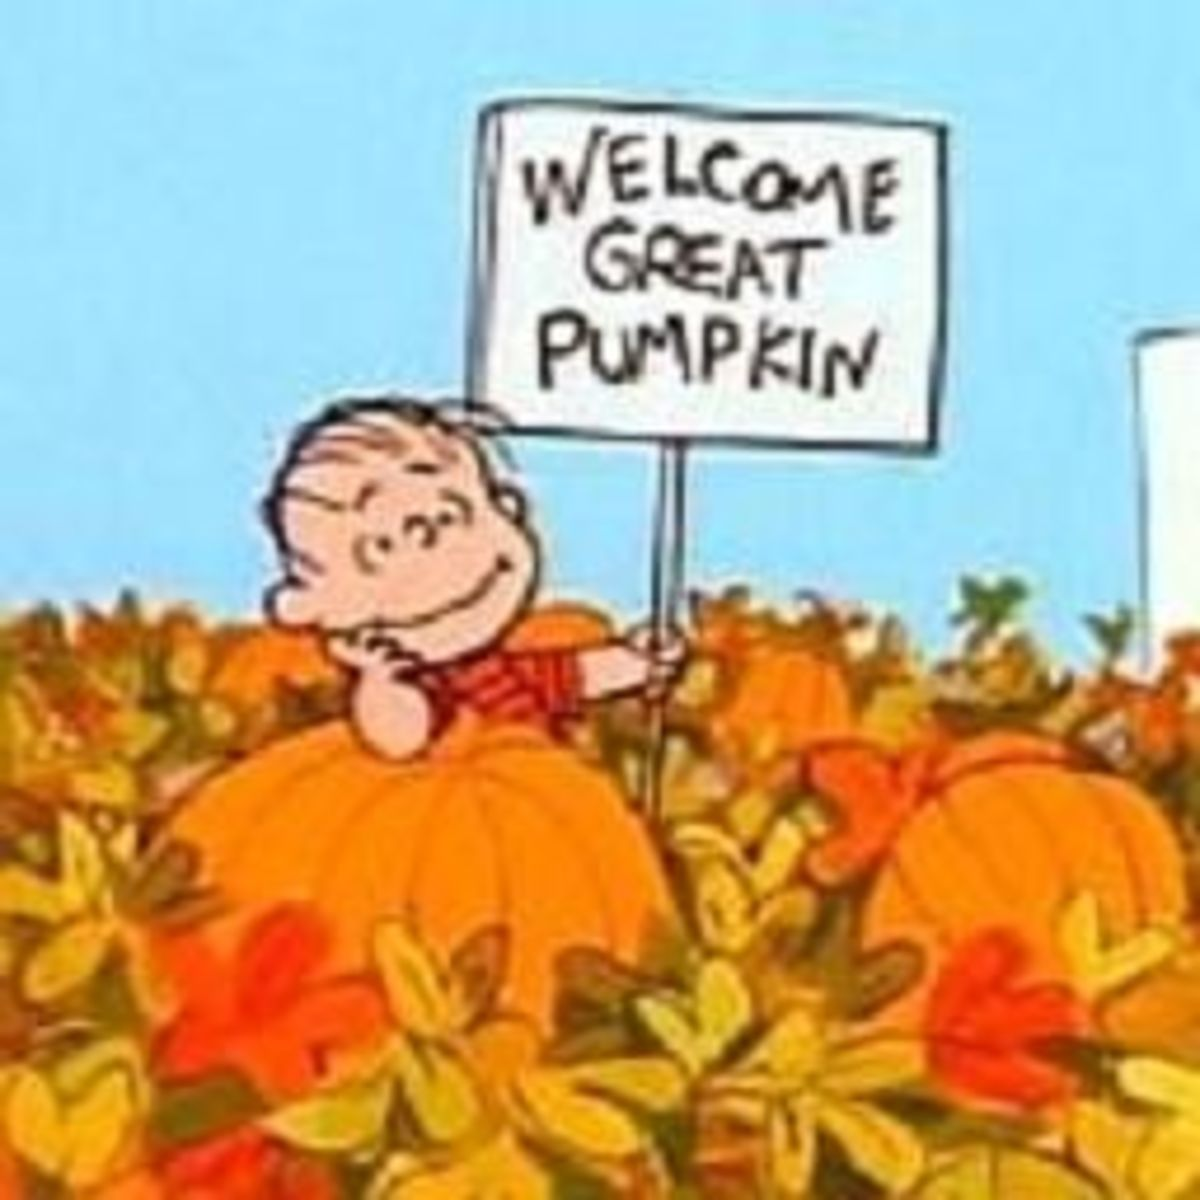 Linus awaiting the arrival of the Great Pumpkin on Halloween night!